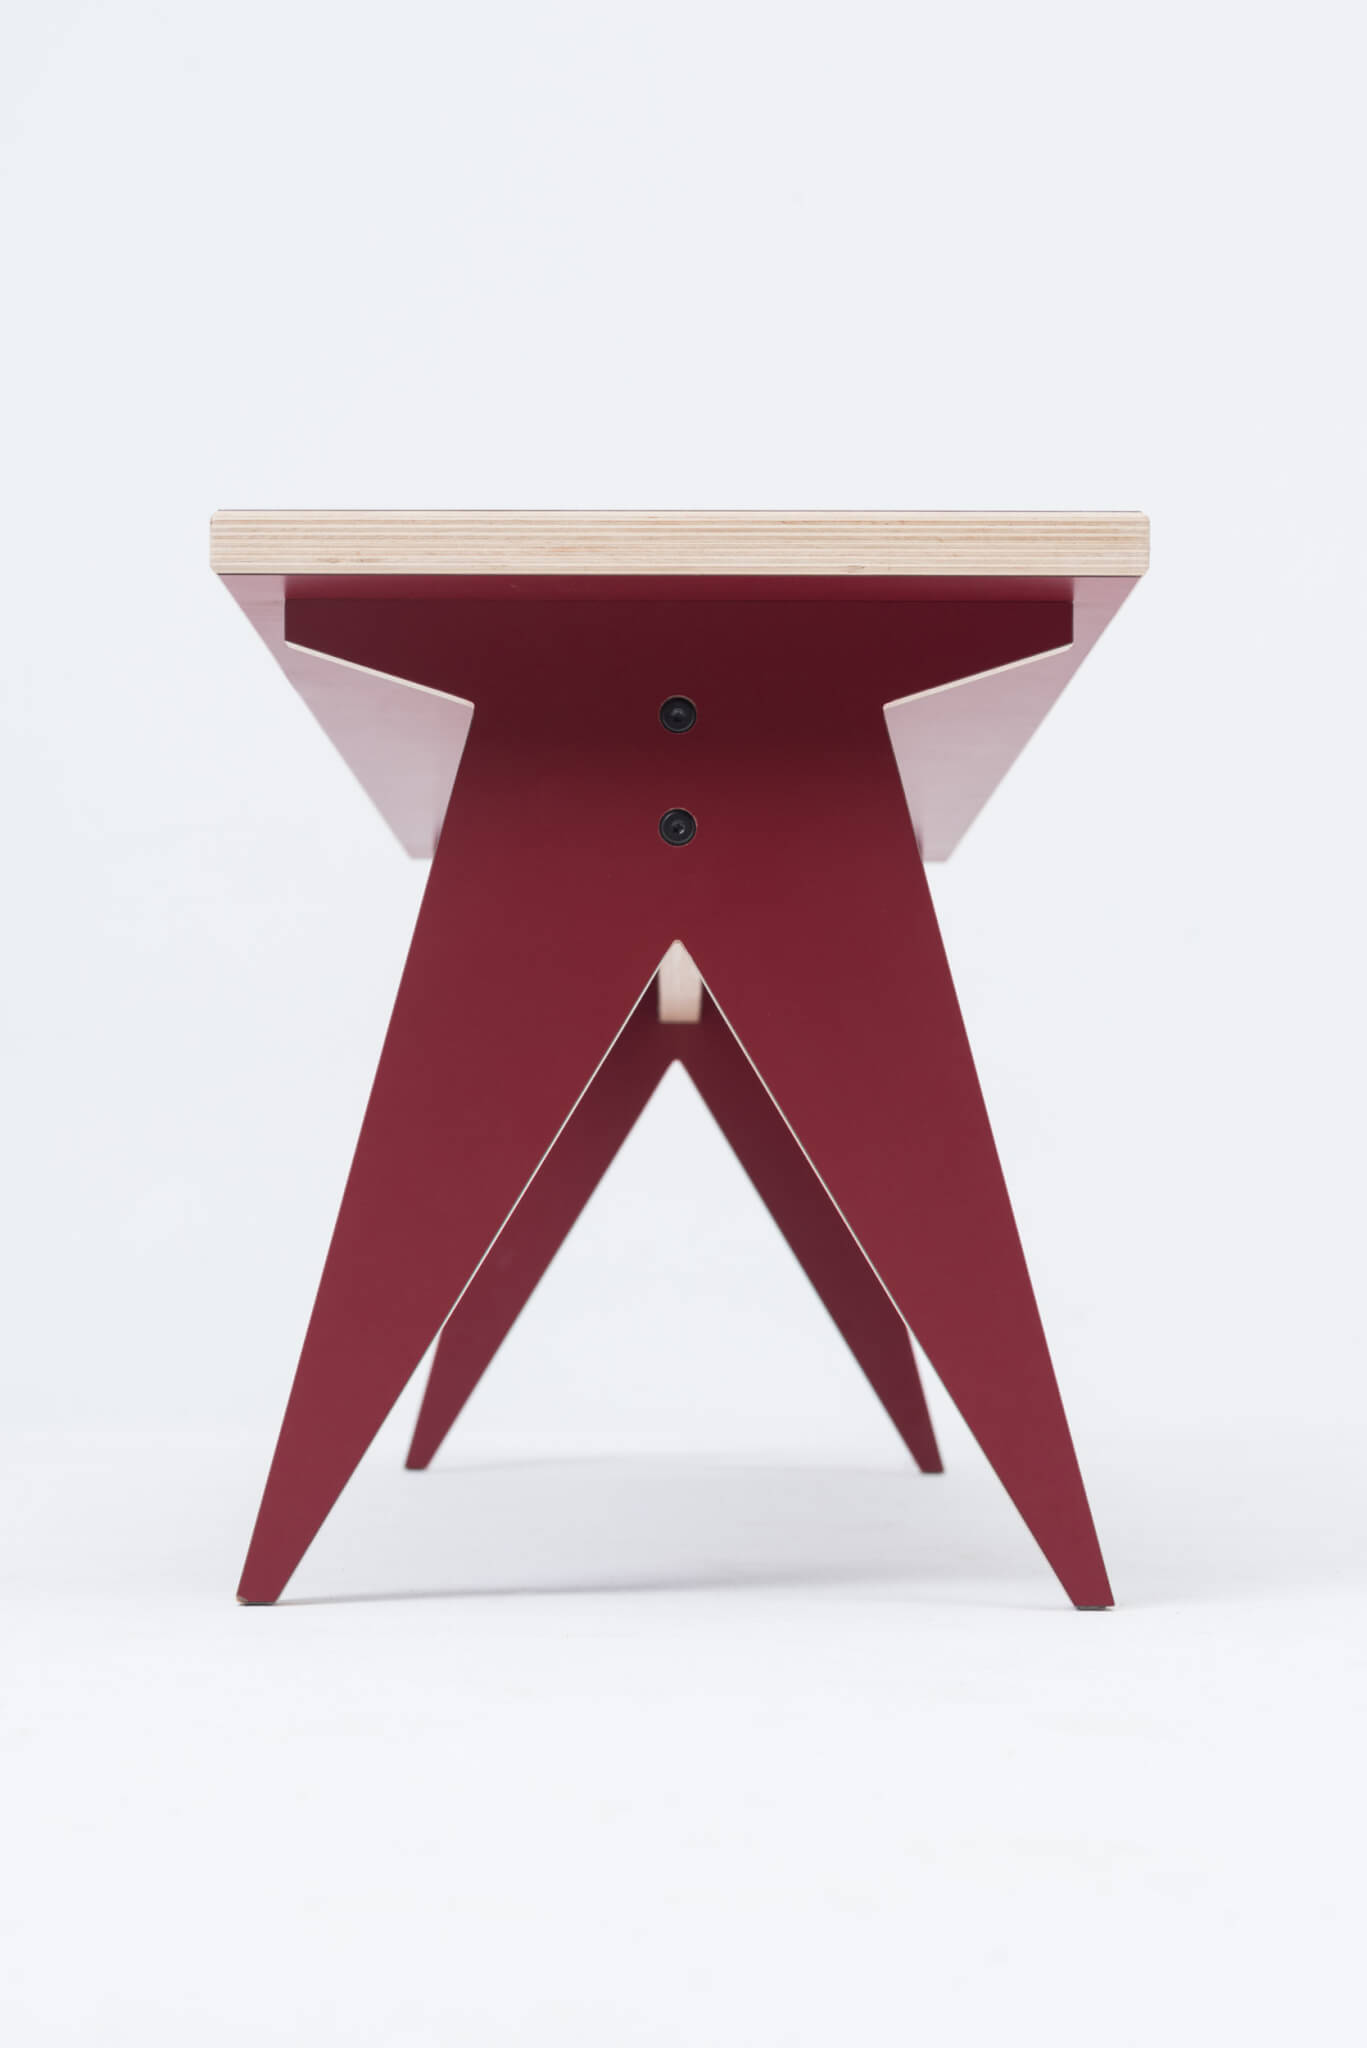 st-calipers-bench-lawka-red-stfurniture.com-05